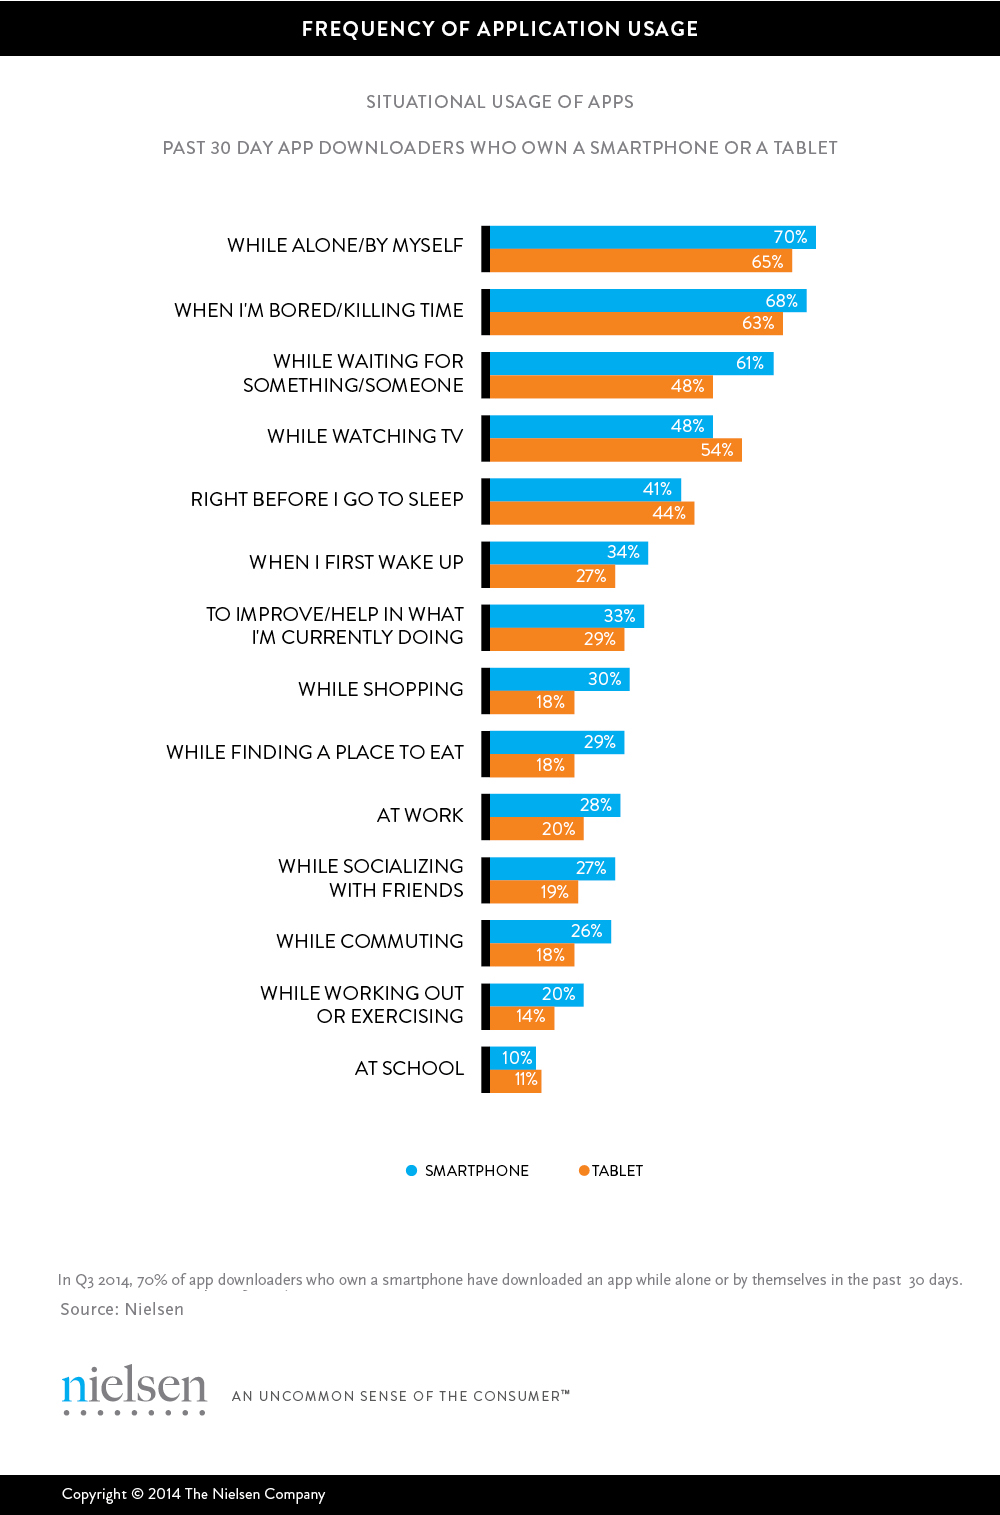 Nielsen - Frequency App Usage